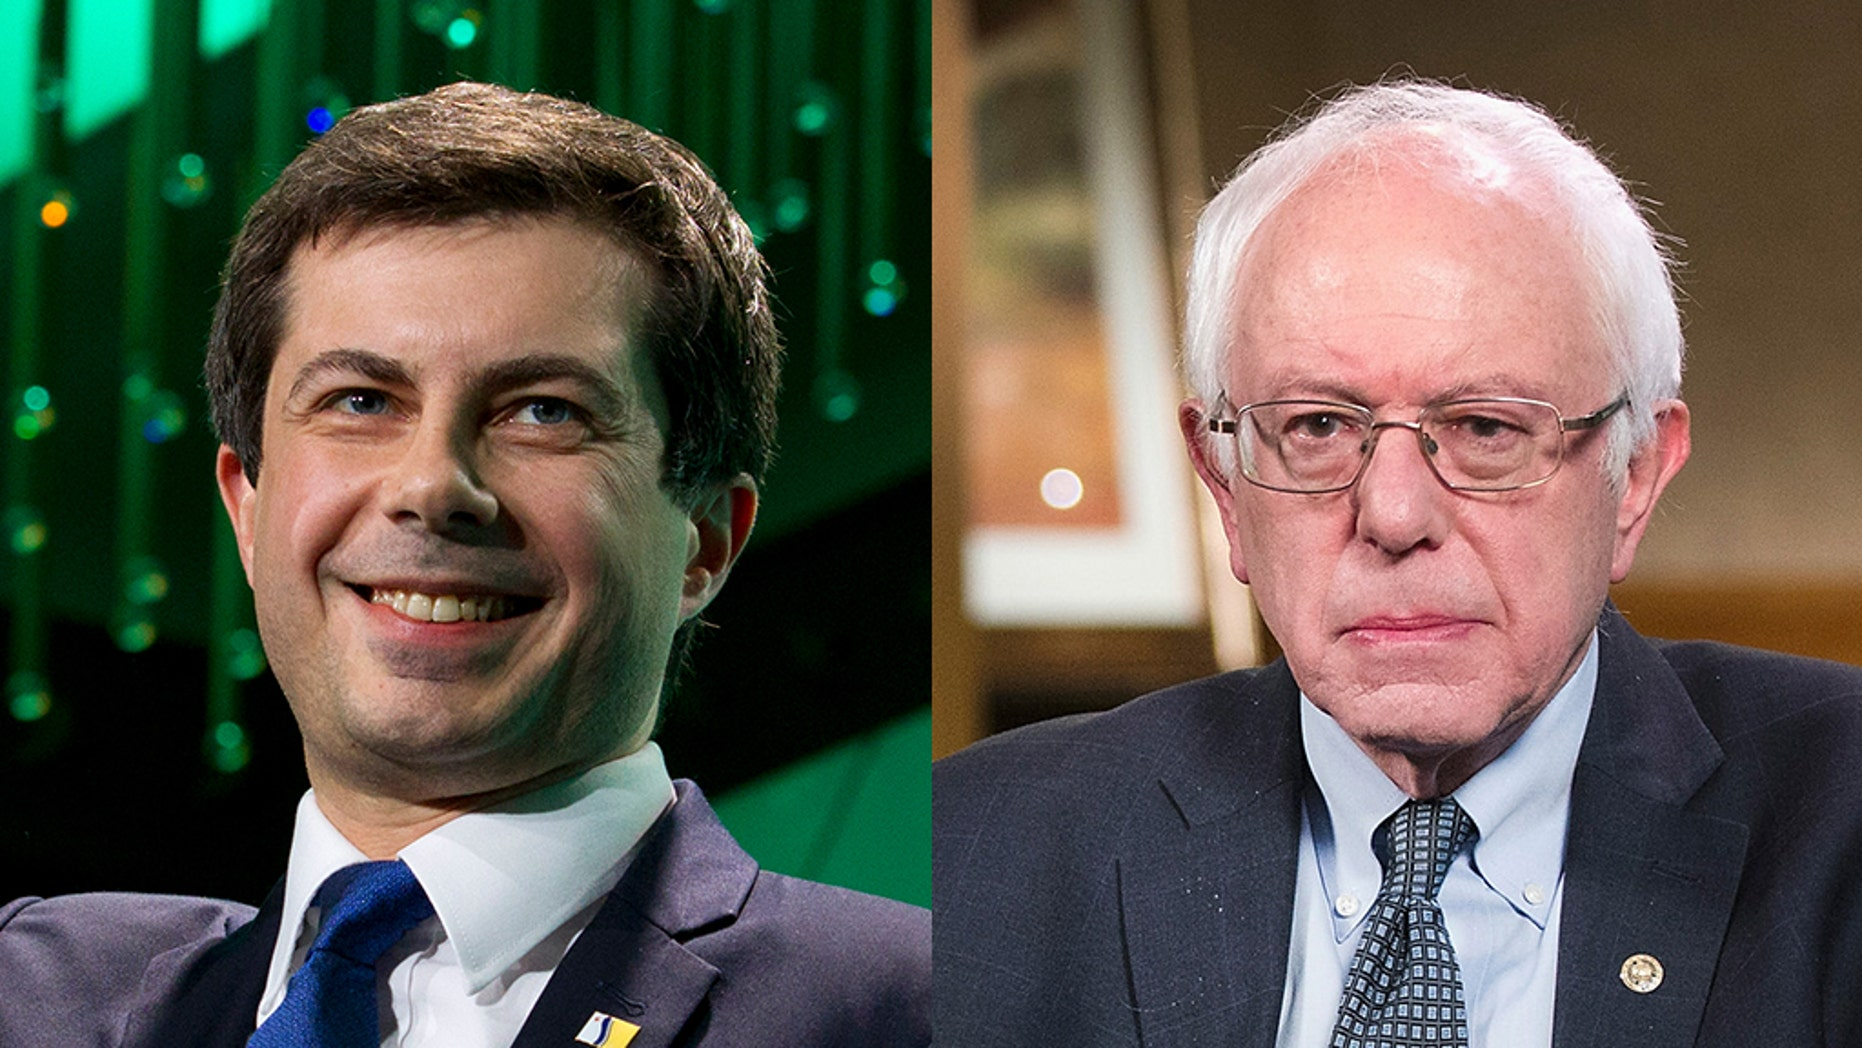 Some Bernie Sanders supporters didn't seem thrilled after Mayor Pete Buttigieg compared parts of the Vermont Senator's base to that of President Trump.